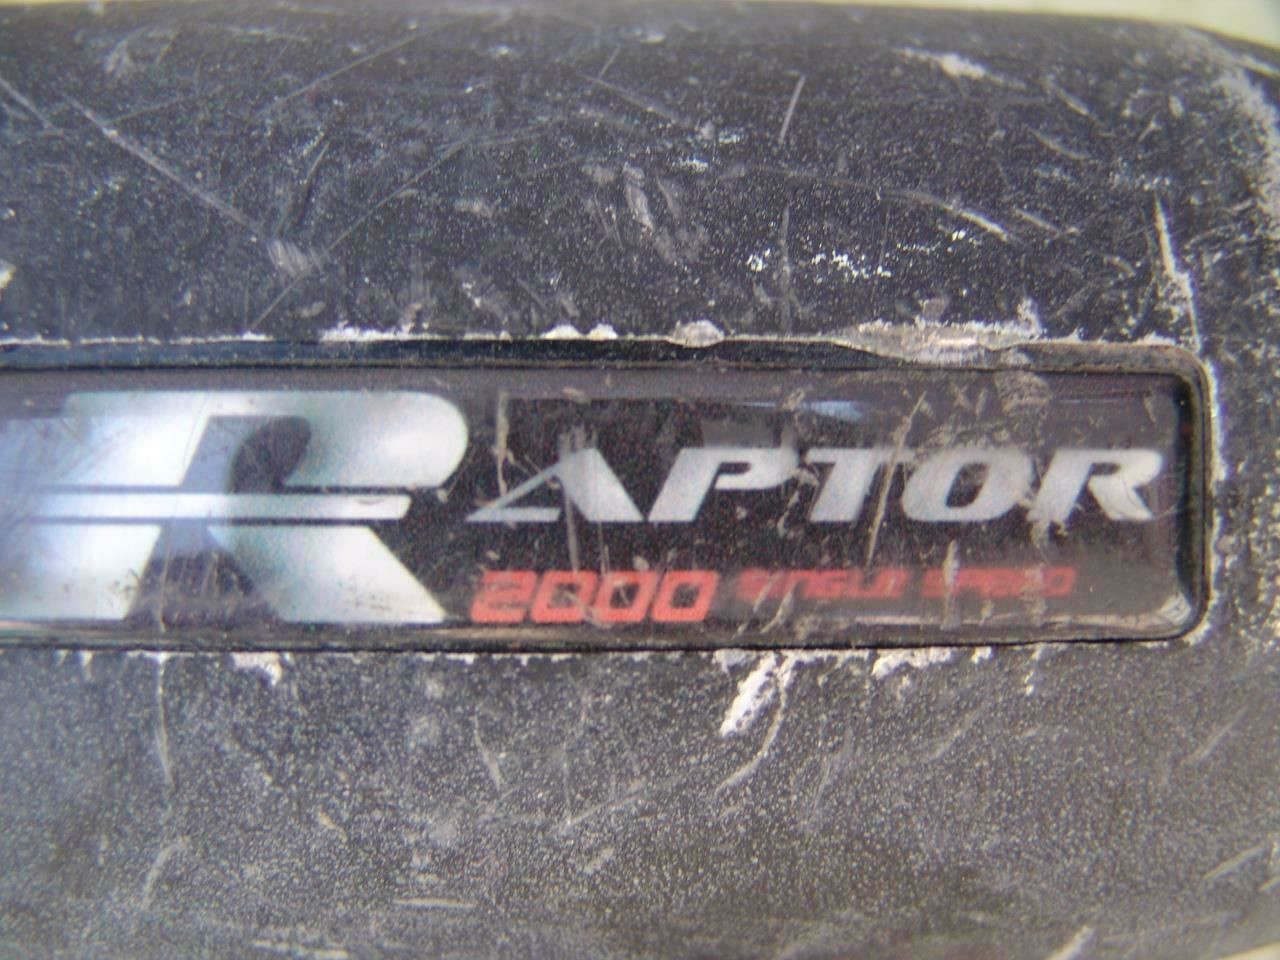 Raptor 2000 Torcup Pneumatic Torque Wrench Works Fine   Unit #9